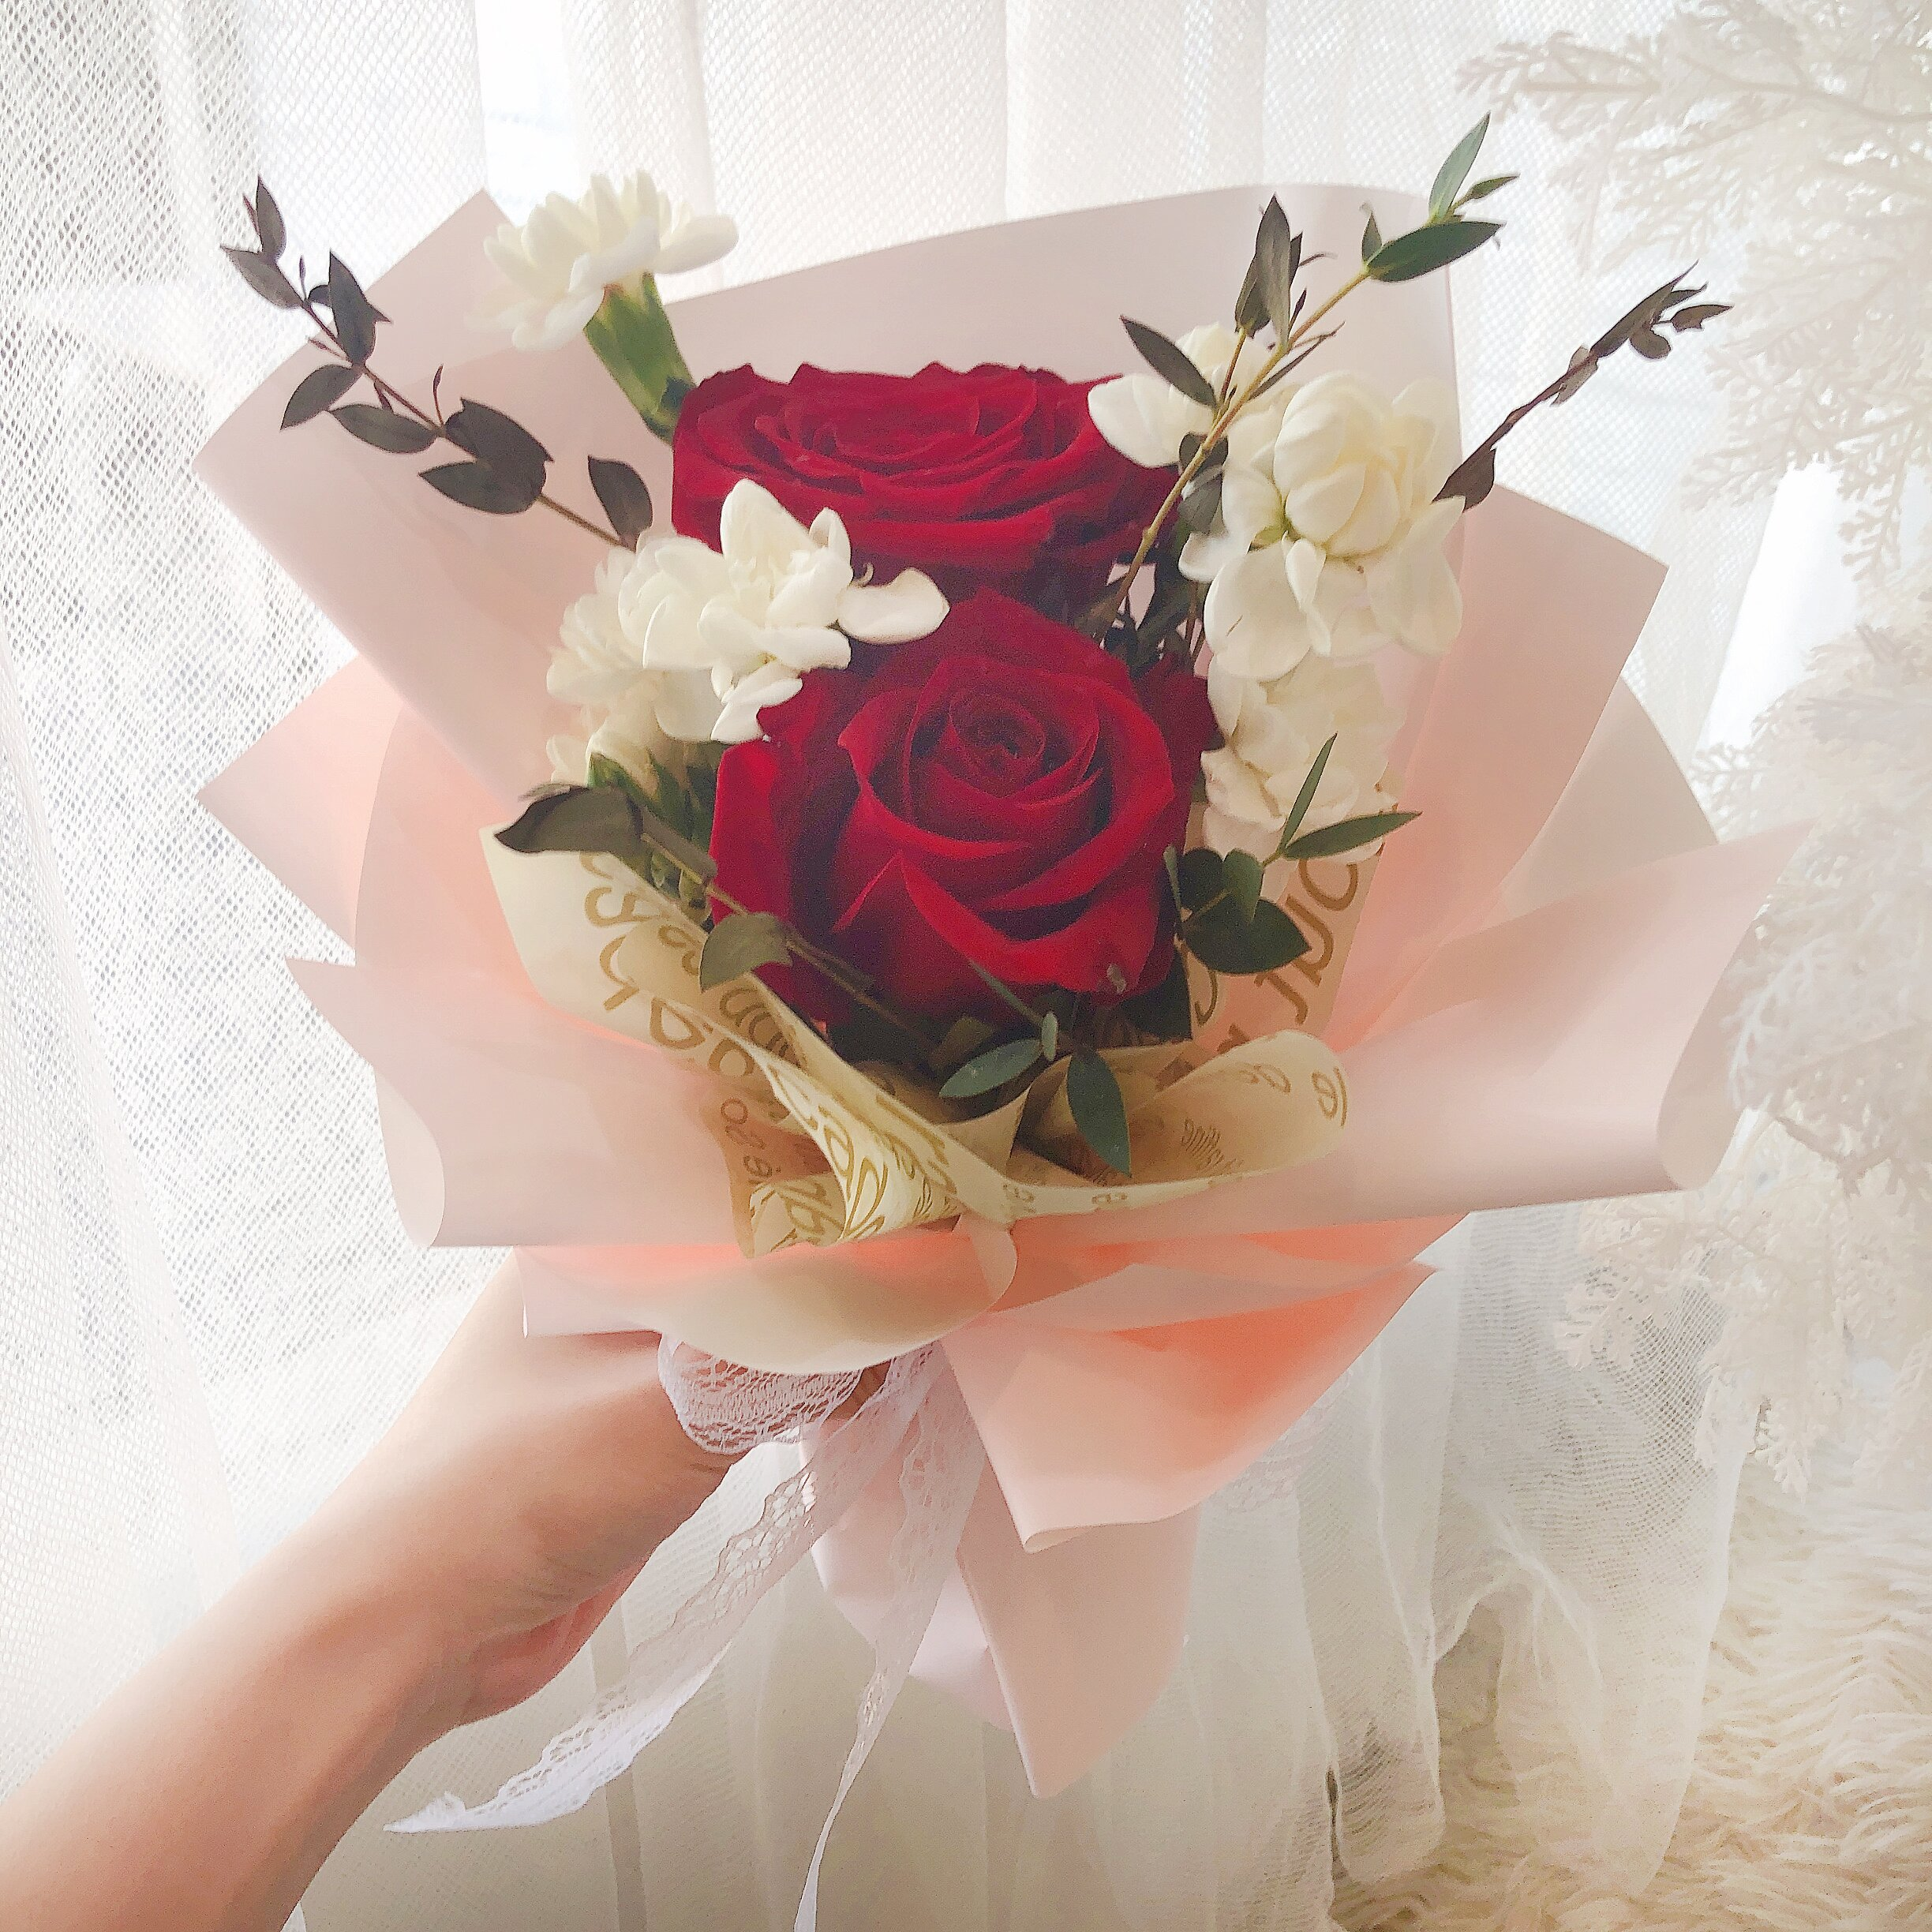 You And Me - Freeland Floral 自由花苑